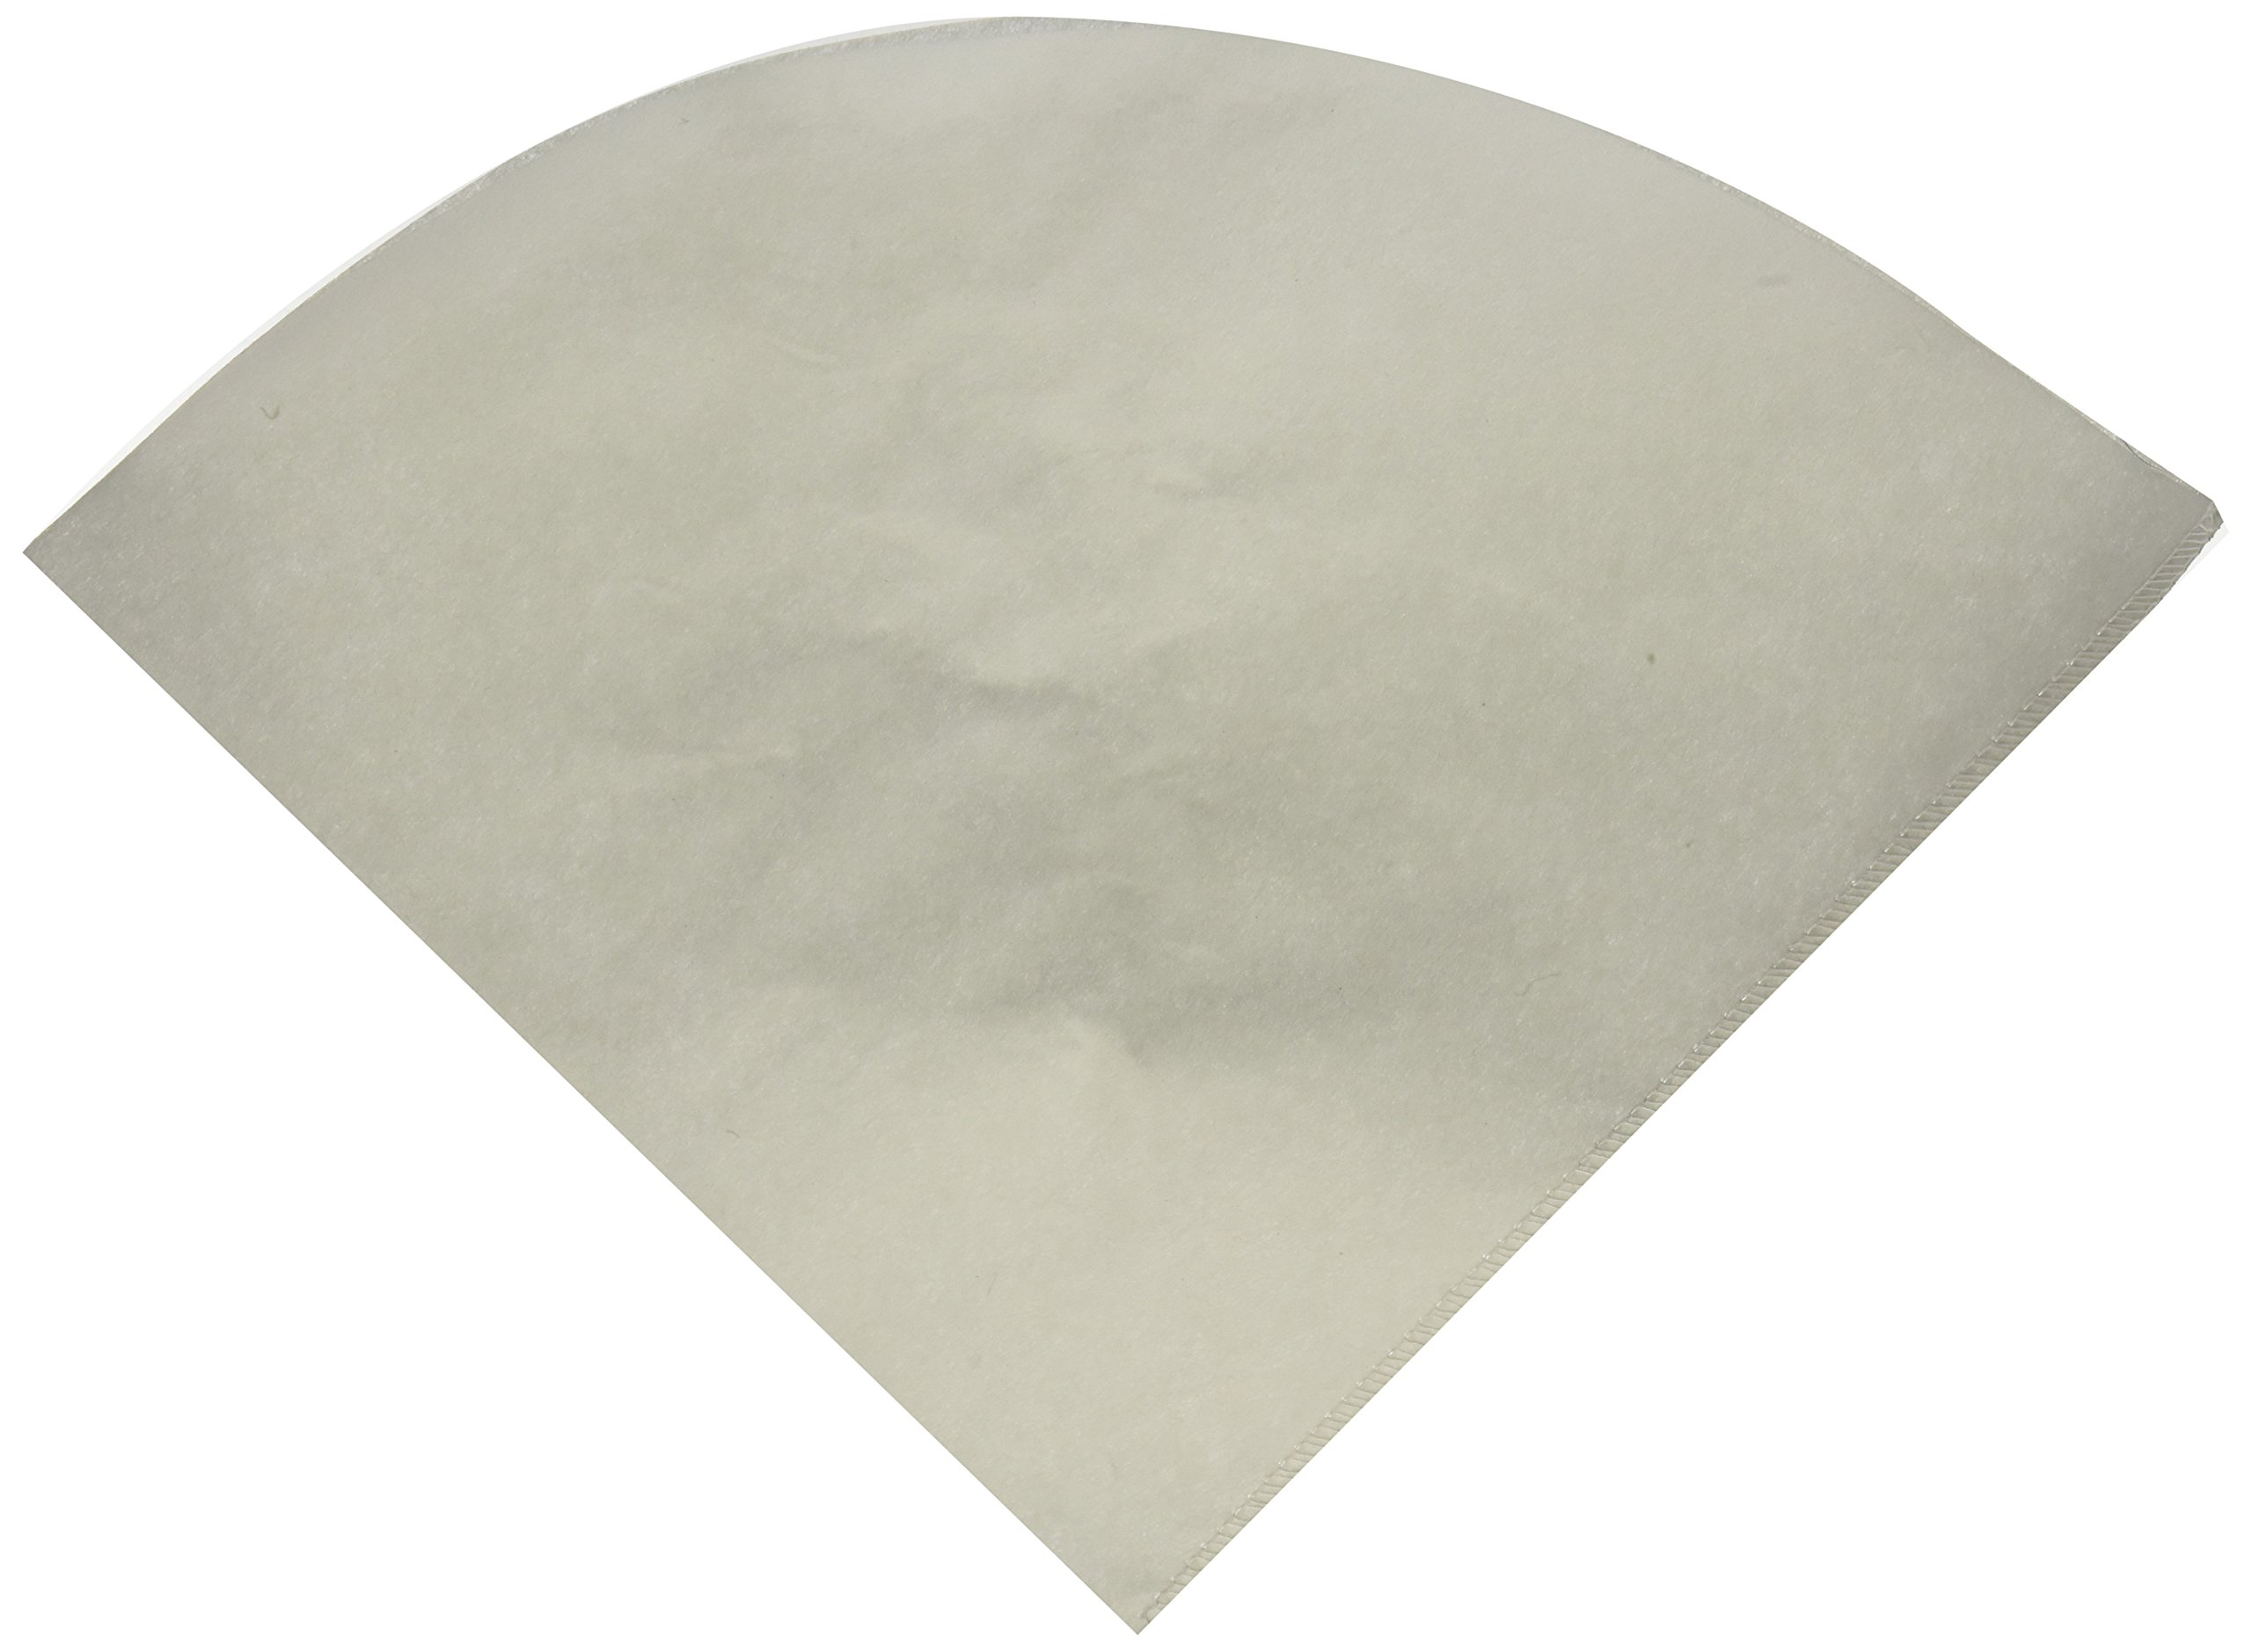 Charcoal Companion CC5105 Oil Funnel Paper Filter, Set of 6